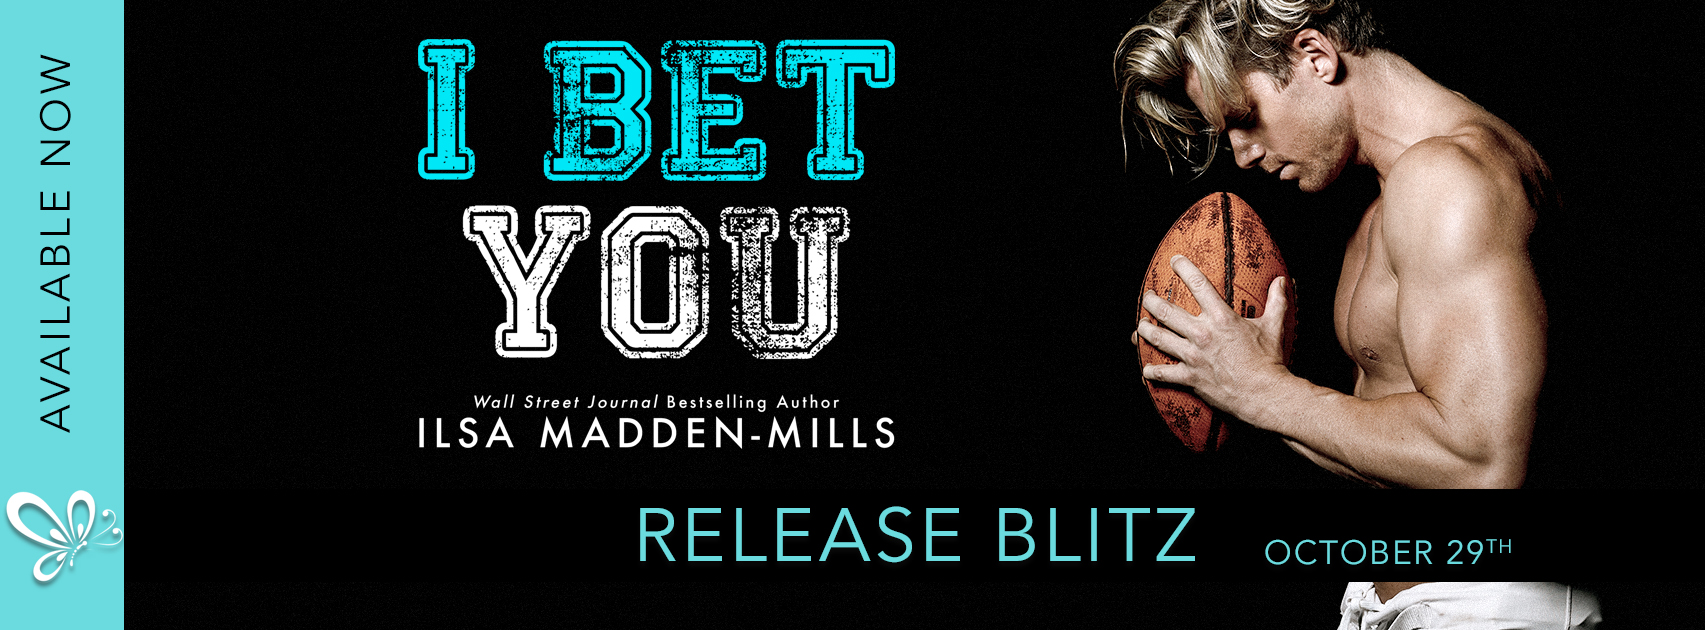 Release Blitz Review:  I Bet You (The Hook Up #2) by Ilsa Madden-Mills